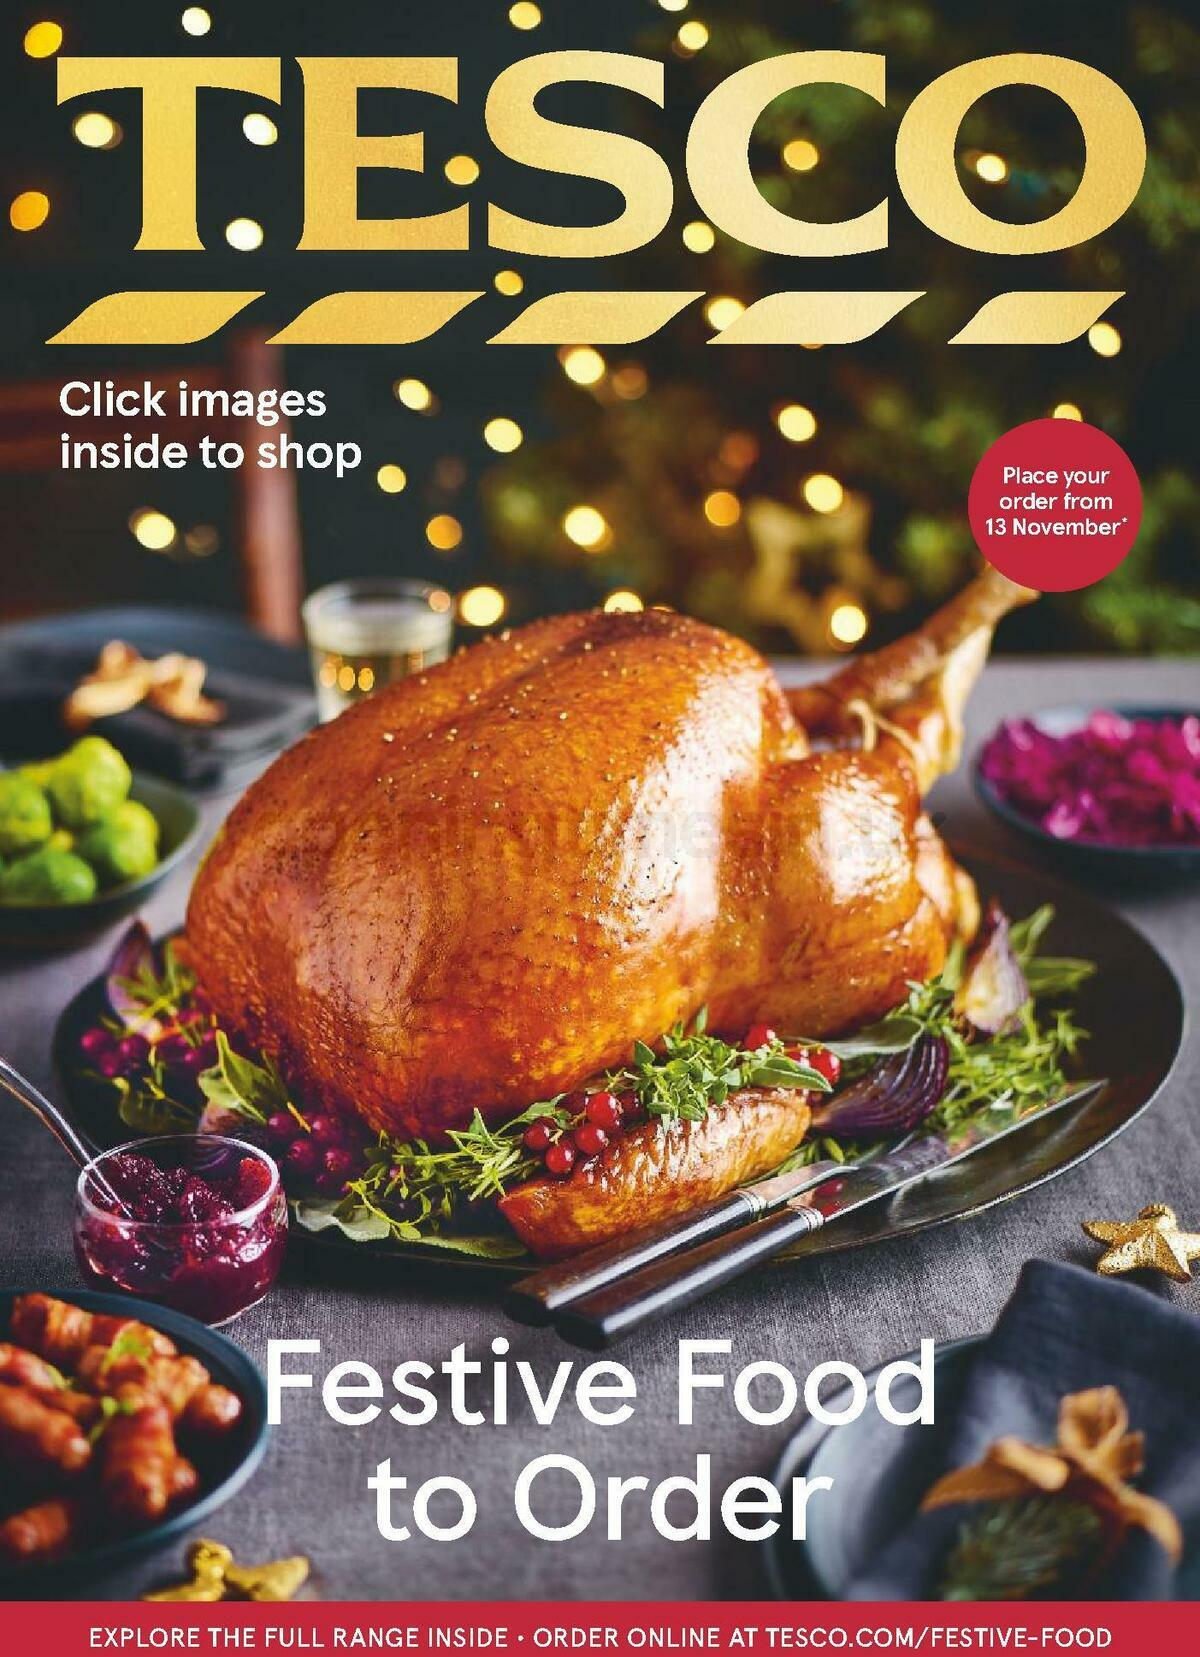 TESCO Festive Food To Order Offers from October 19